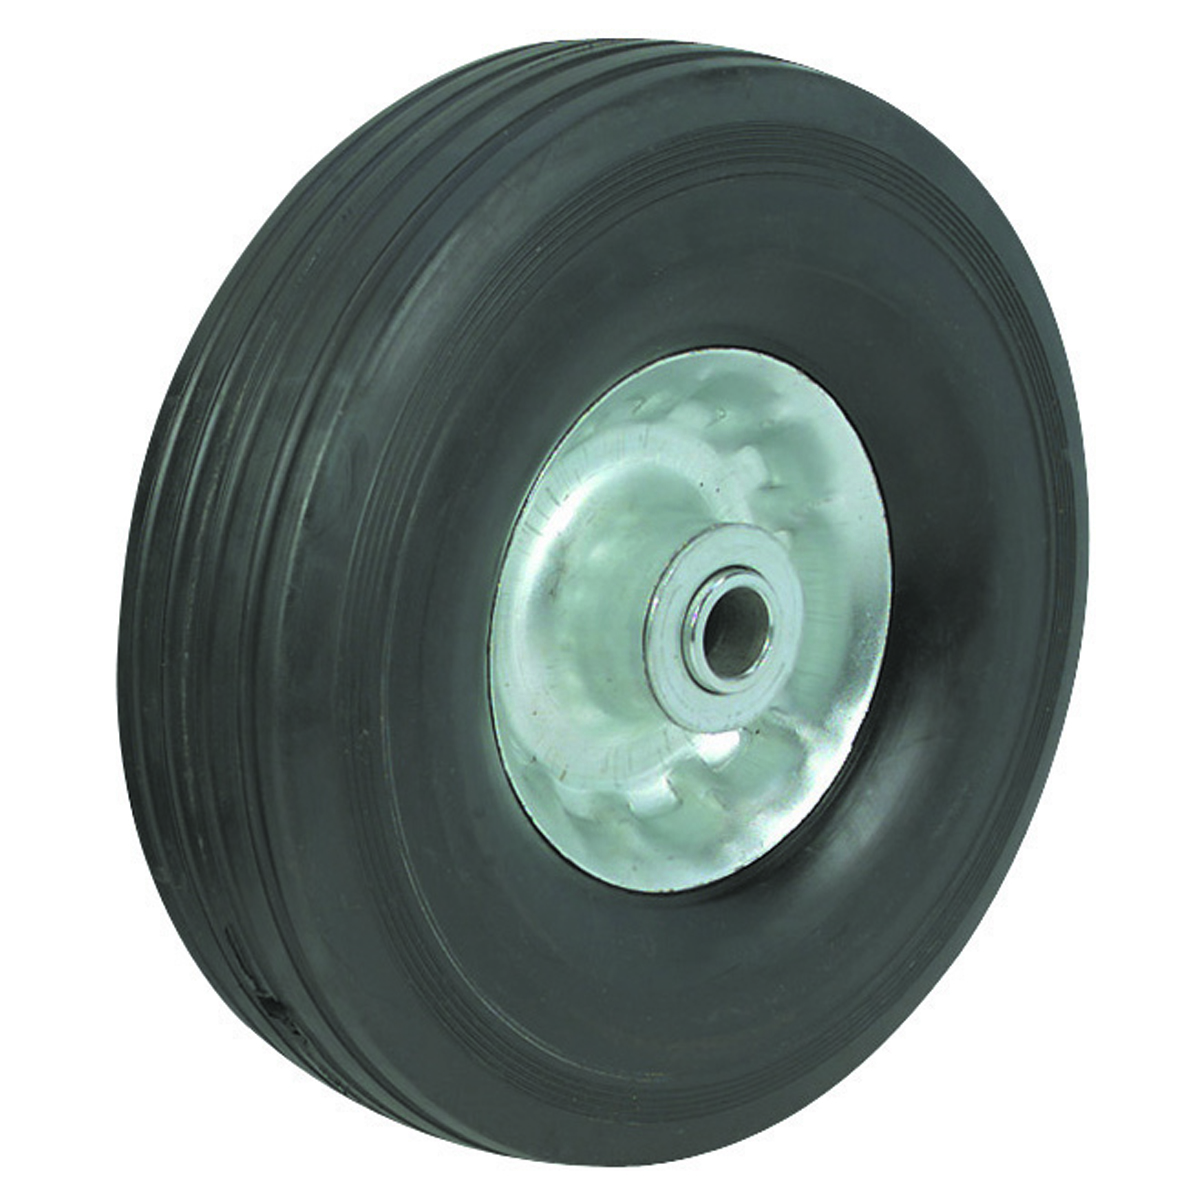 8 Quot Solid Rubber Tire With Zinc Plated Rim